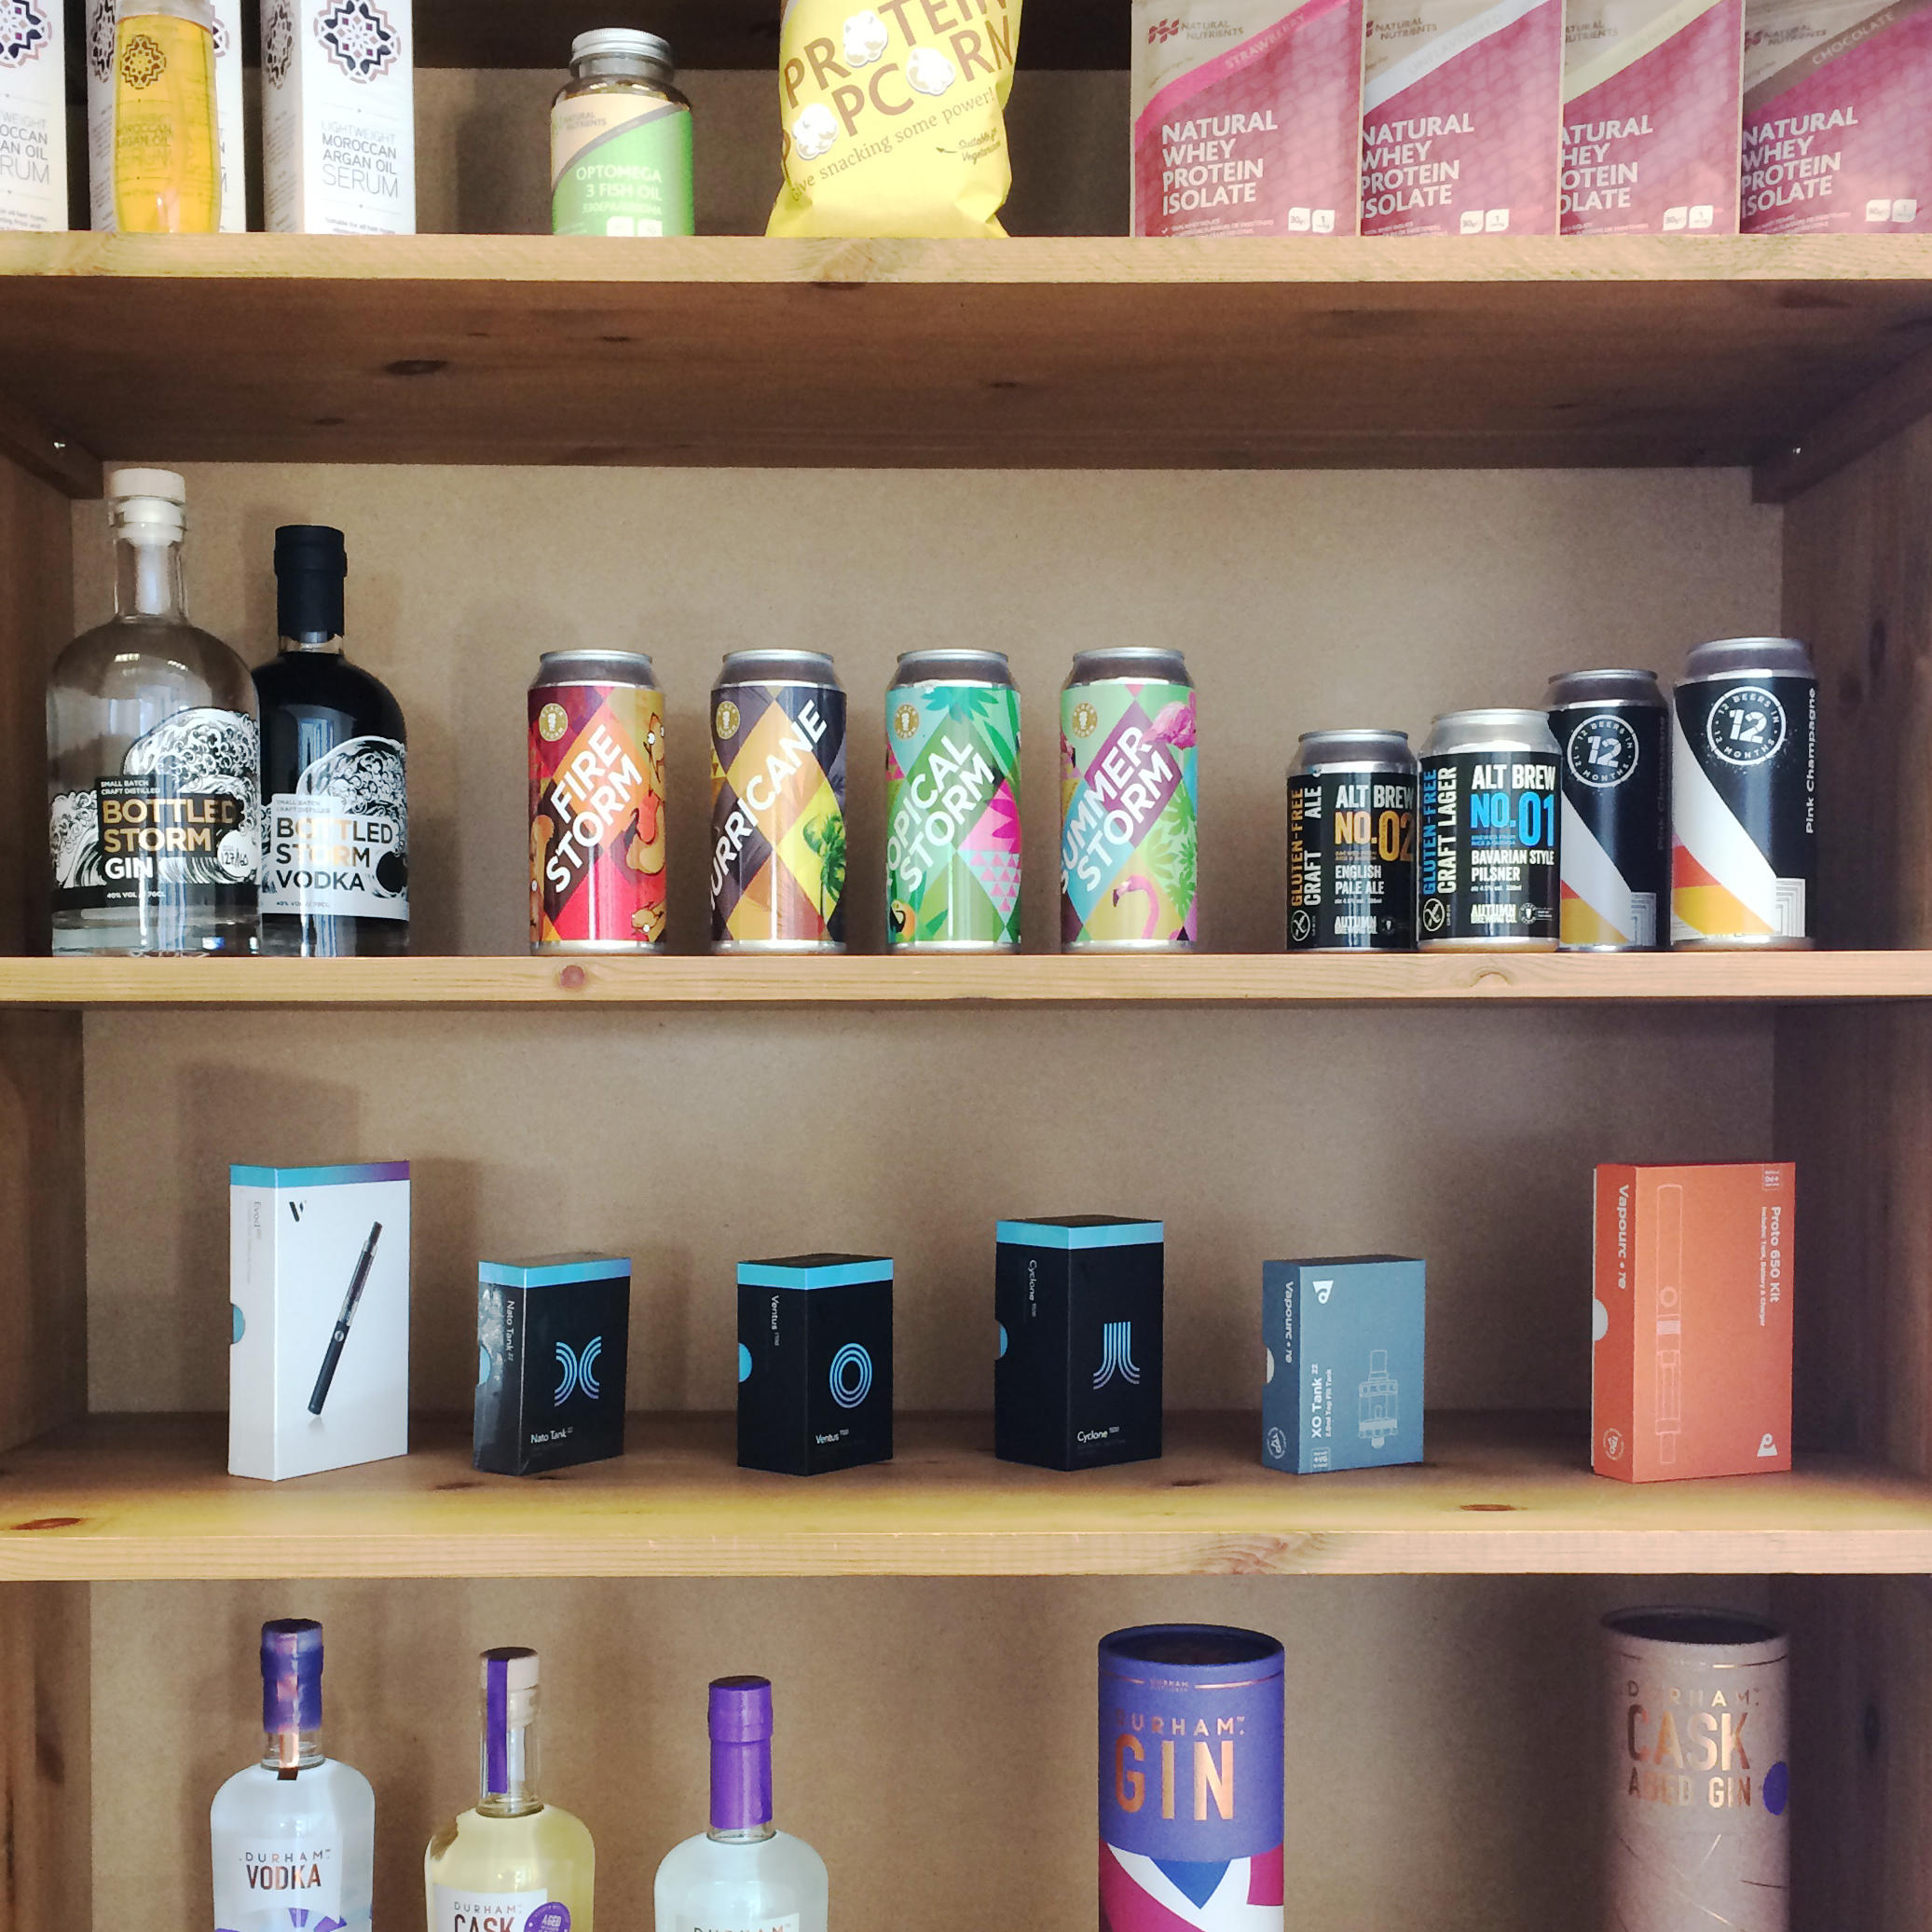 Shelf of Packaging designs created by Wonderstuff